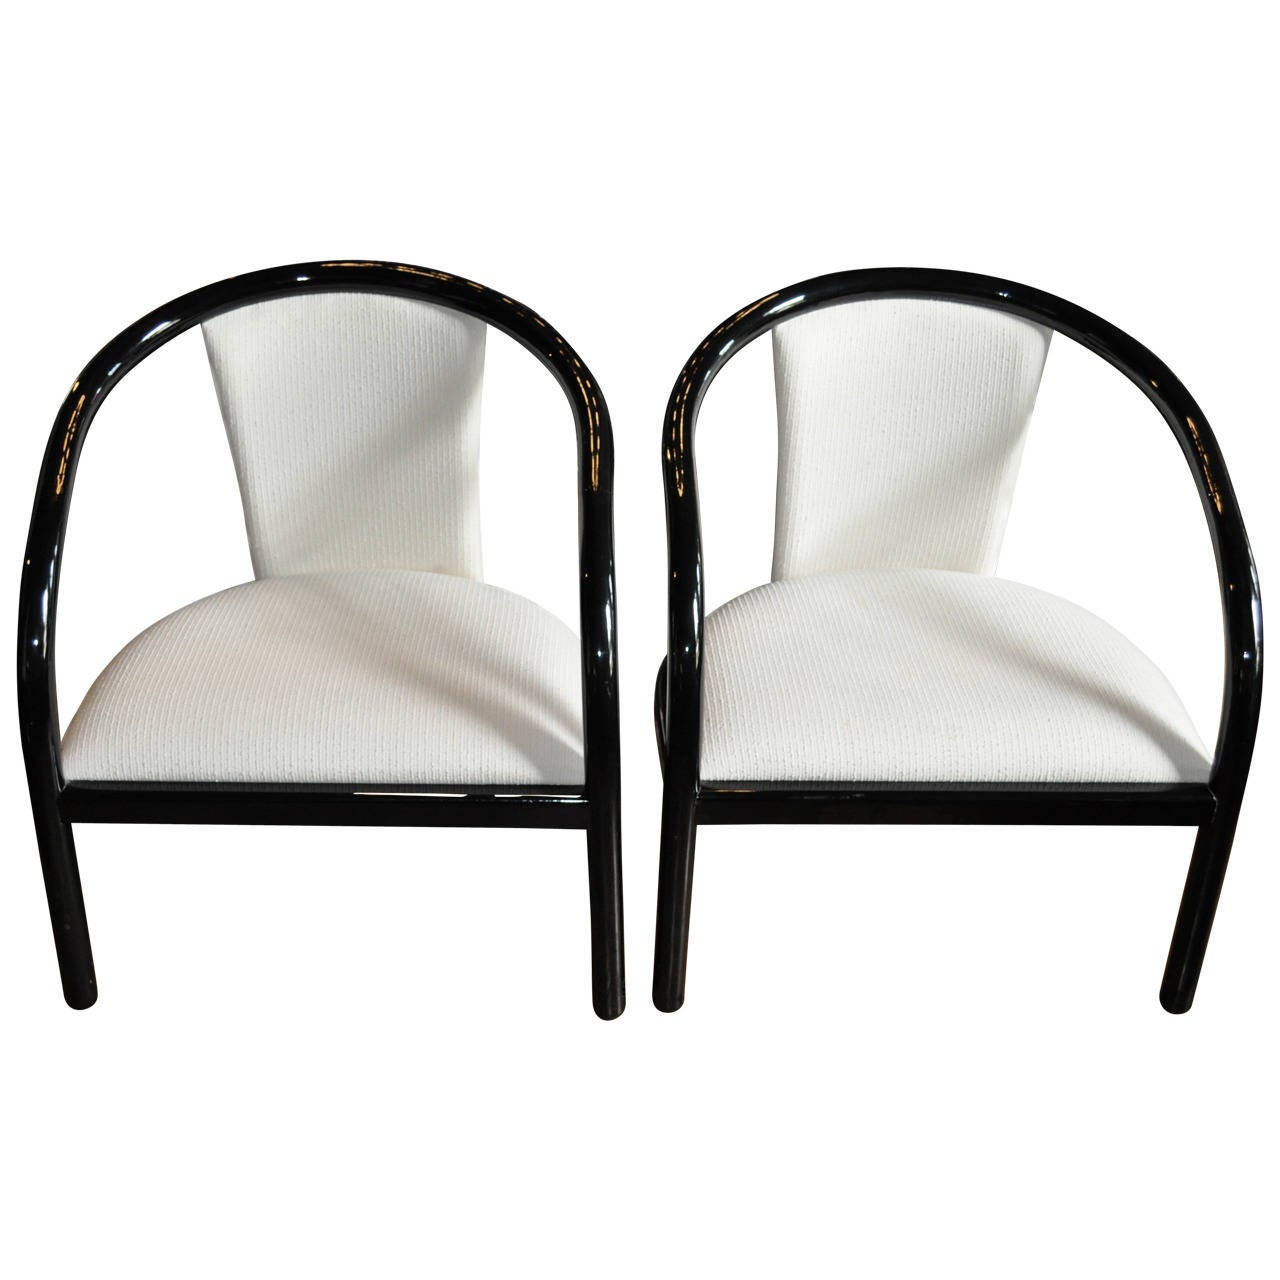 Pair of Italian Black Lacquer Tubular Chairs 1